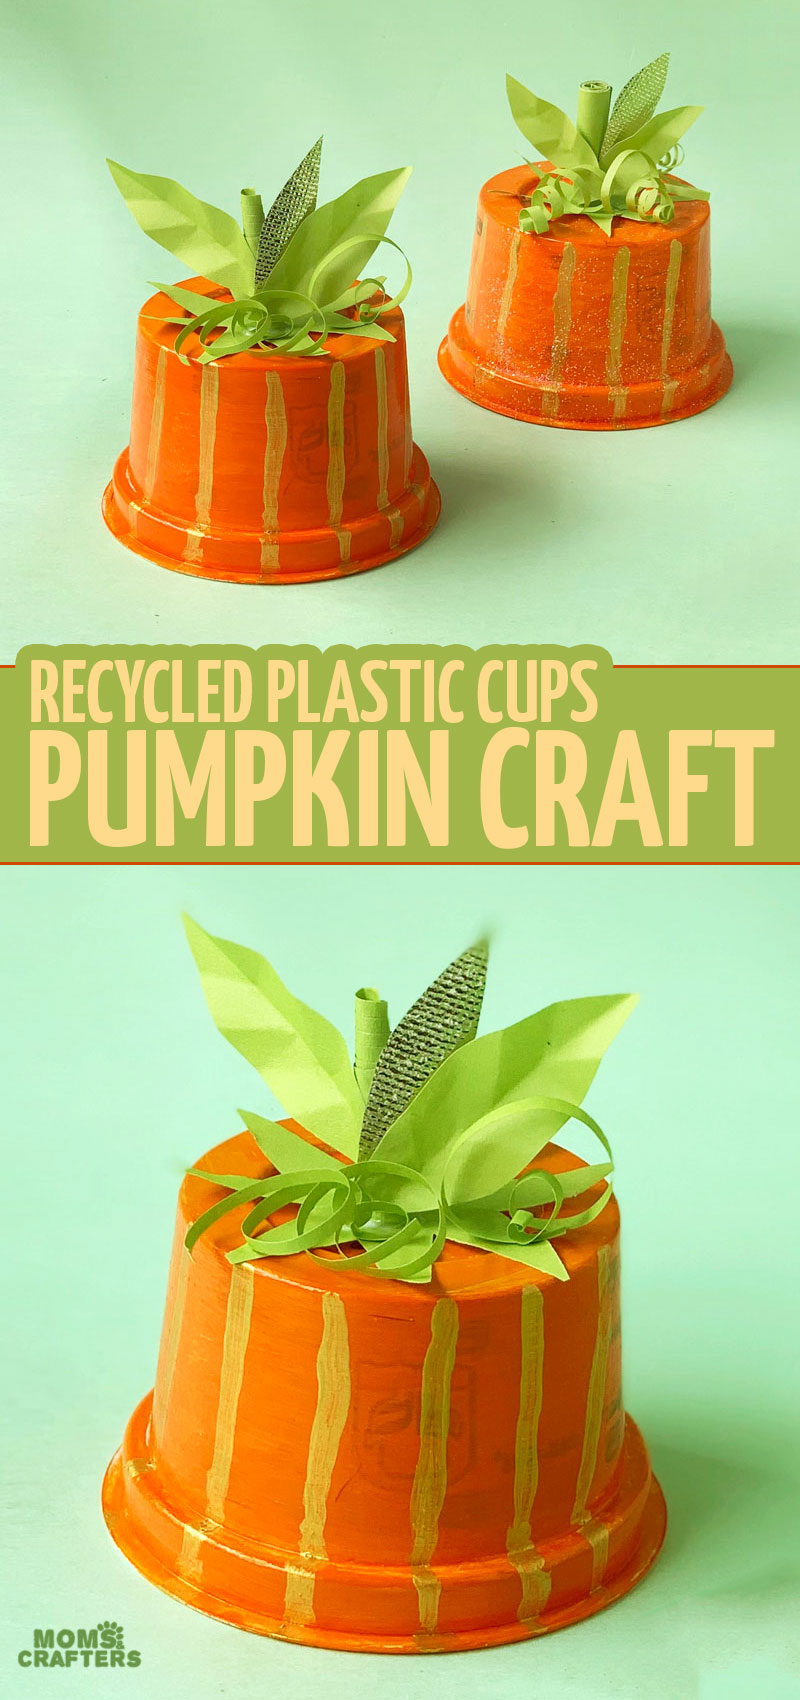 An easy peasy recycled pumpkin craft made from plastic cups - this sweet Halloween craft is also a great fall craft for preschoolers, toddlers, big kids and tweens - and it comes with a free printable template to make it even easier!